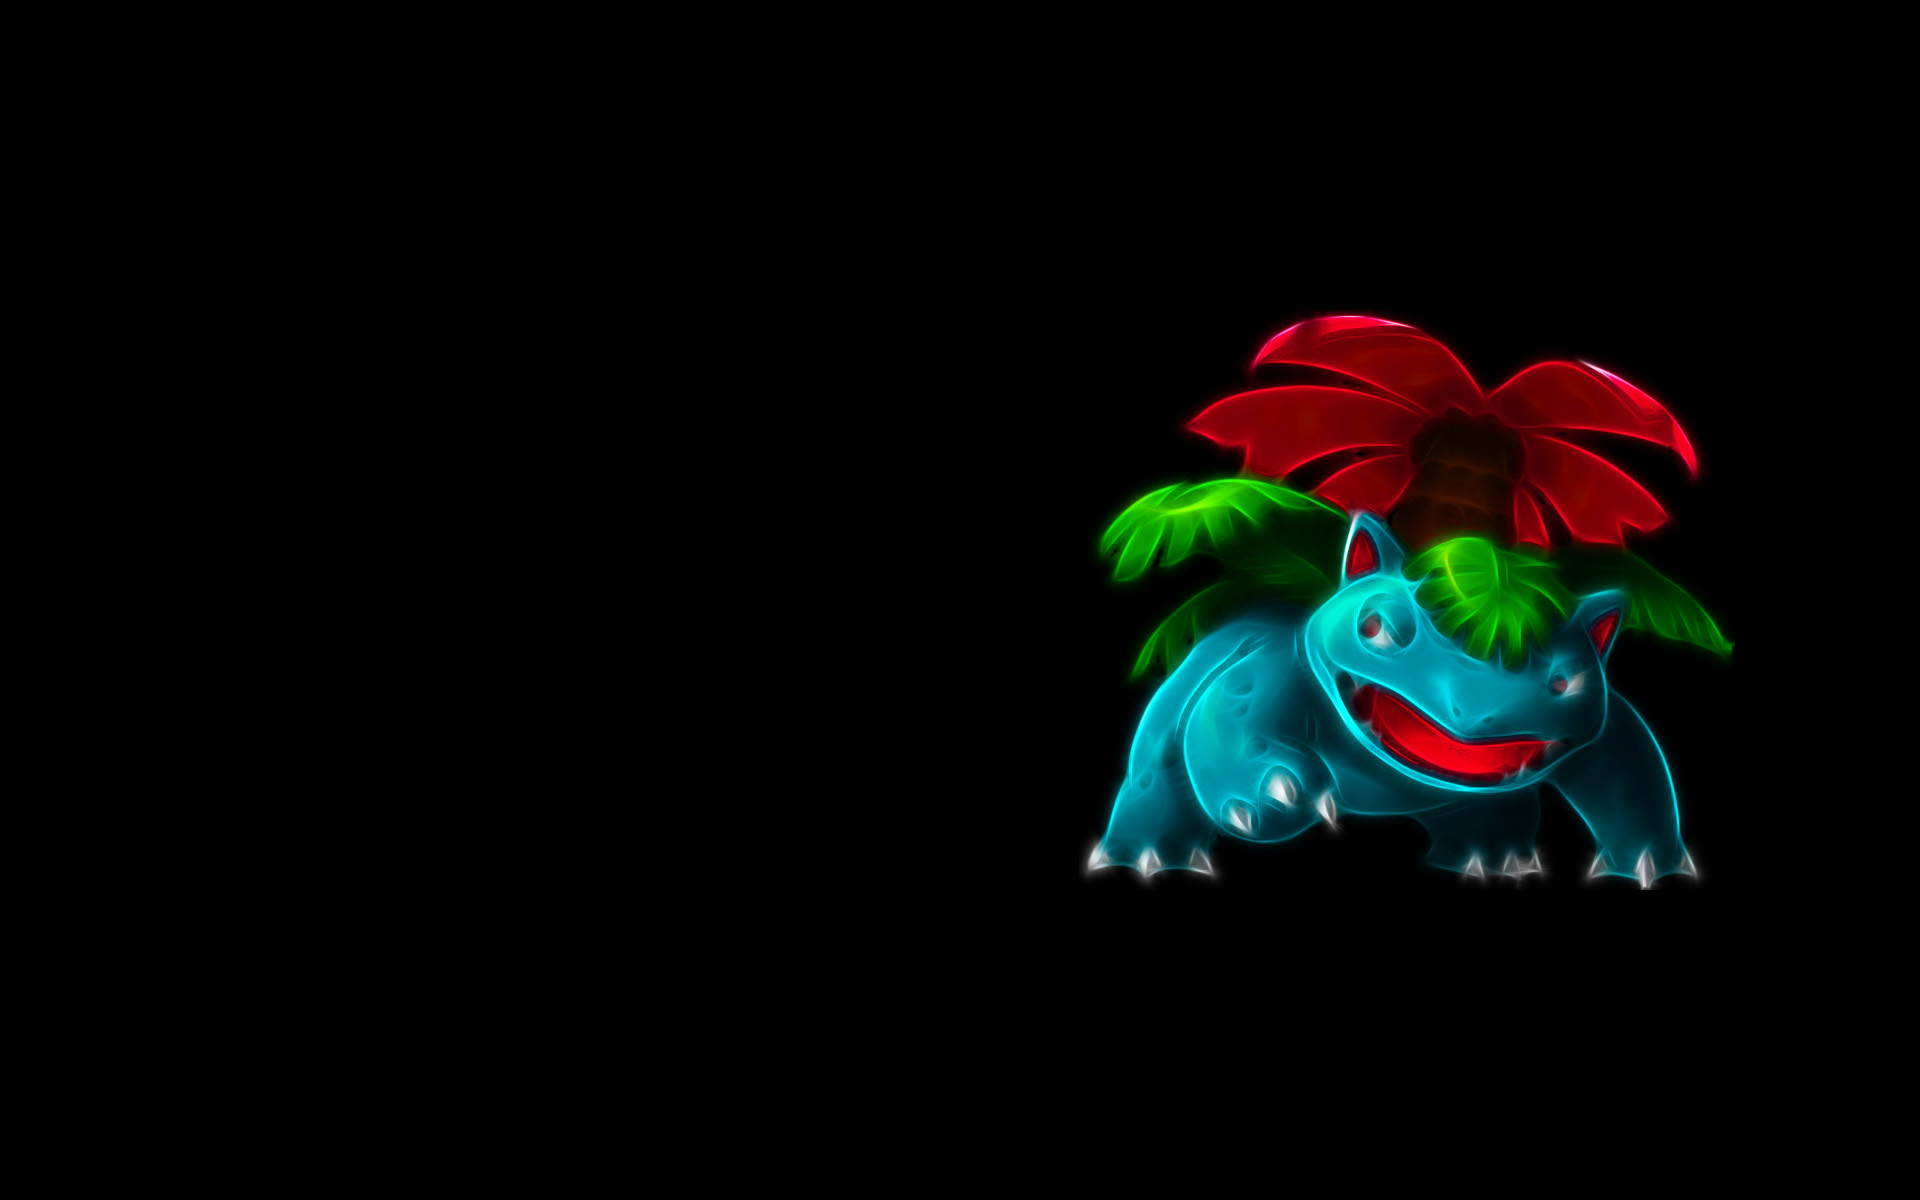 venusaur wallpaper 48069